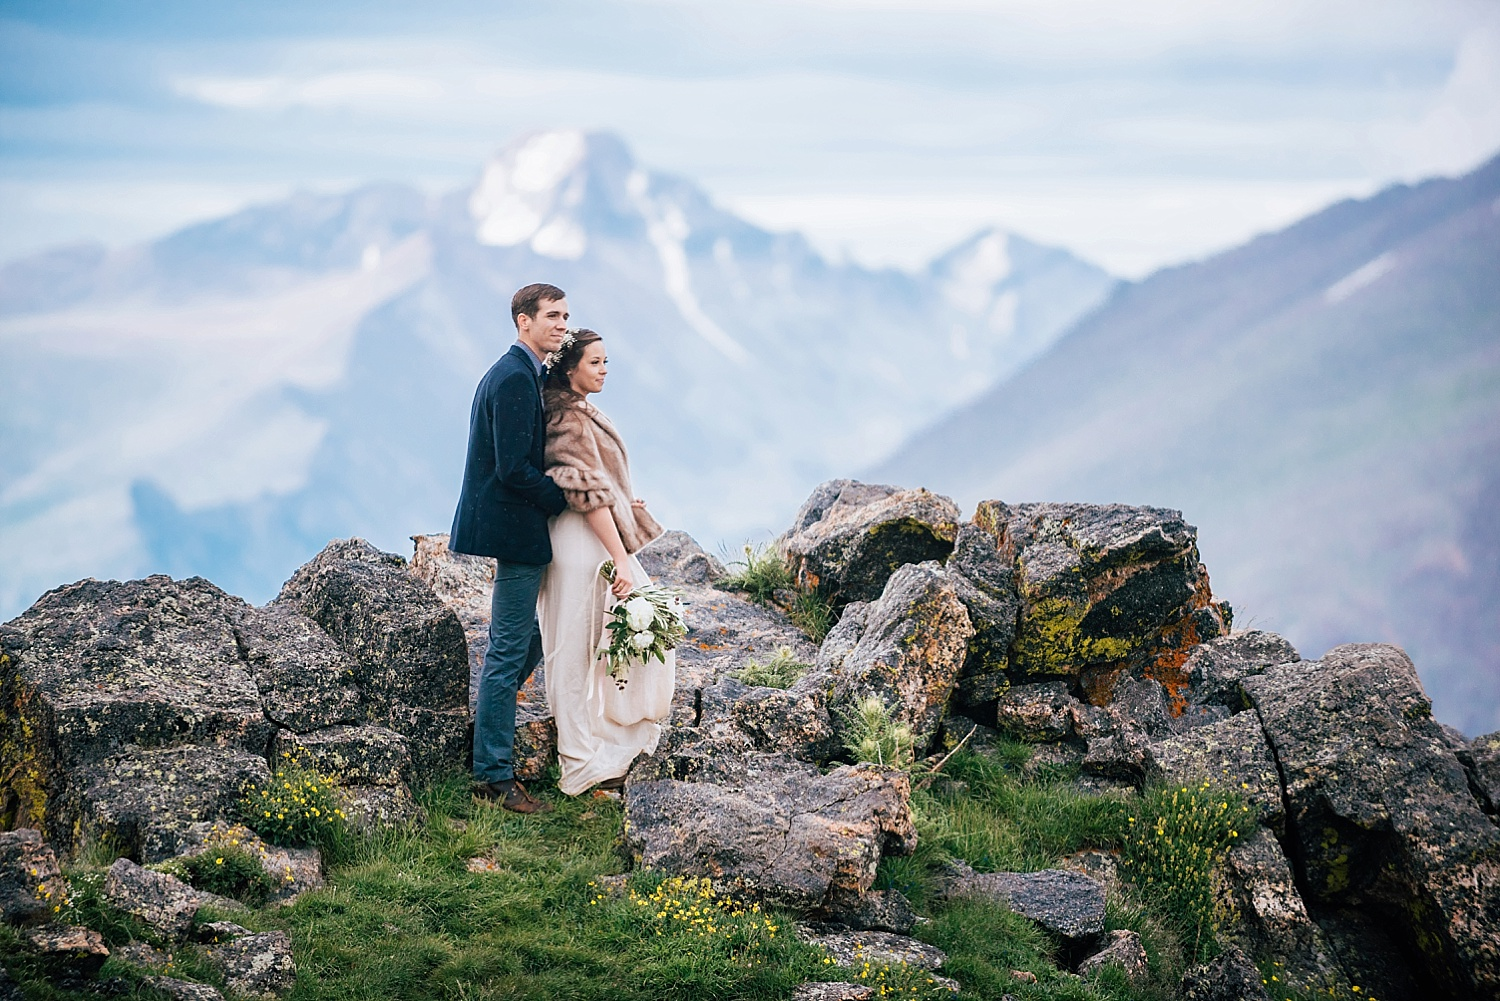 This stunning mountain wedding photo was taken by Maddie Mae Photography near Estes Park Colorado in Rocky Mountain National Park.